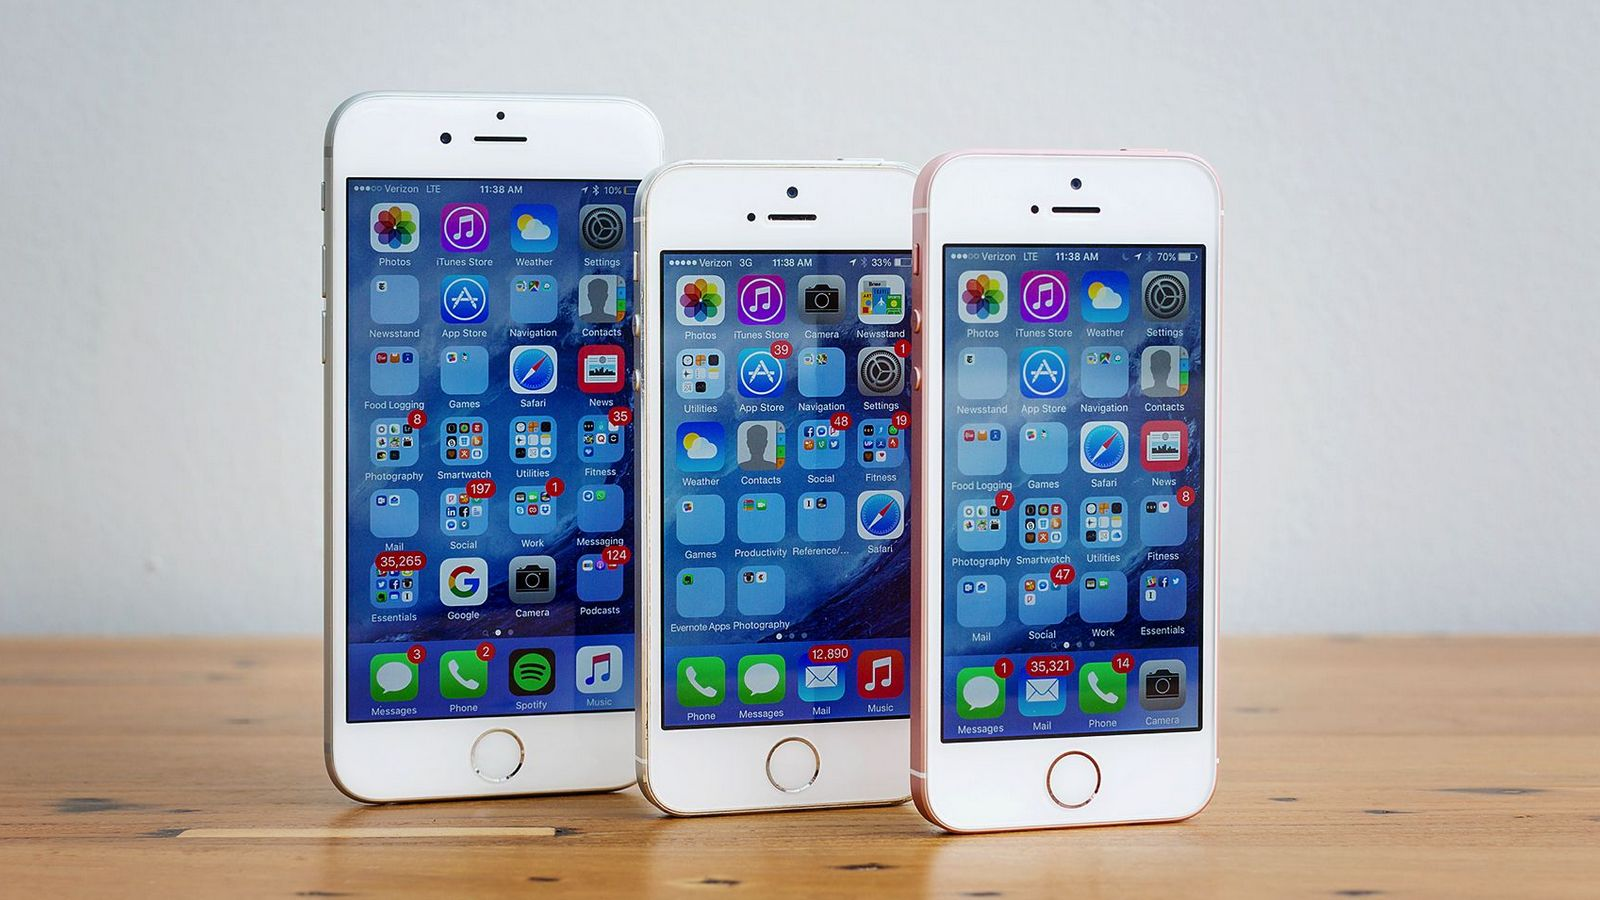 Should I buy iPhone 5s in 2016?